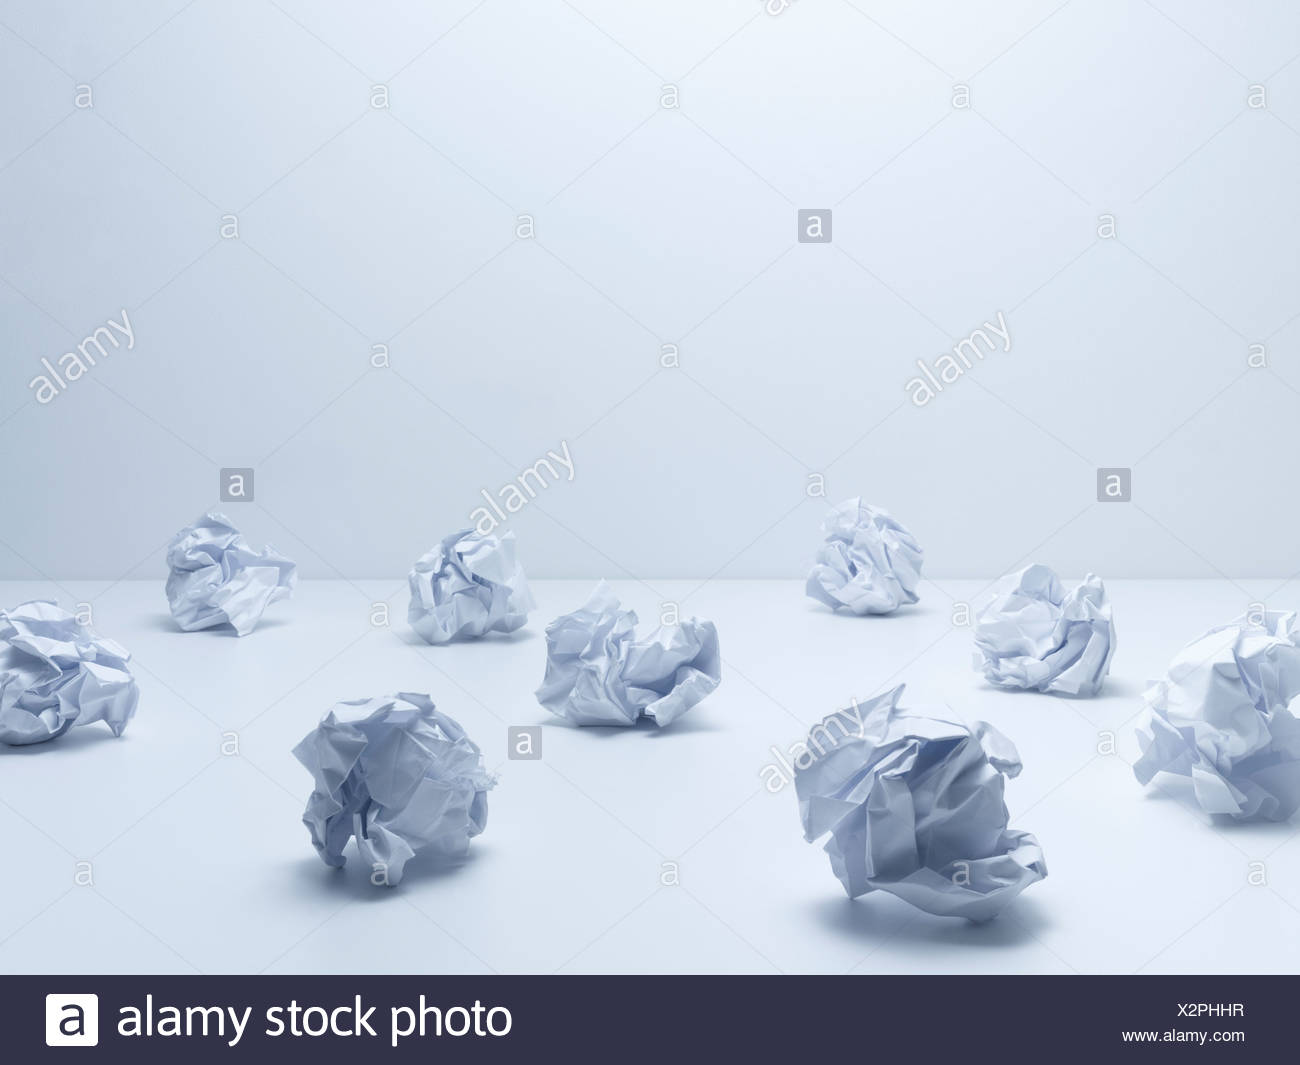 Crumpled balls of paper - Stock Image